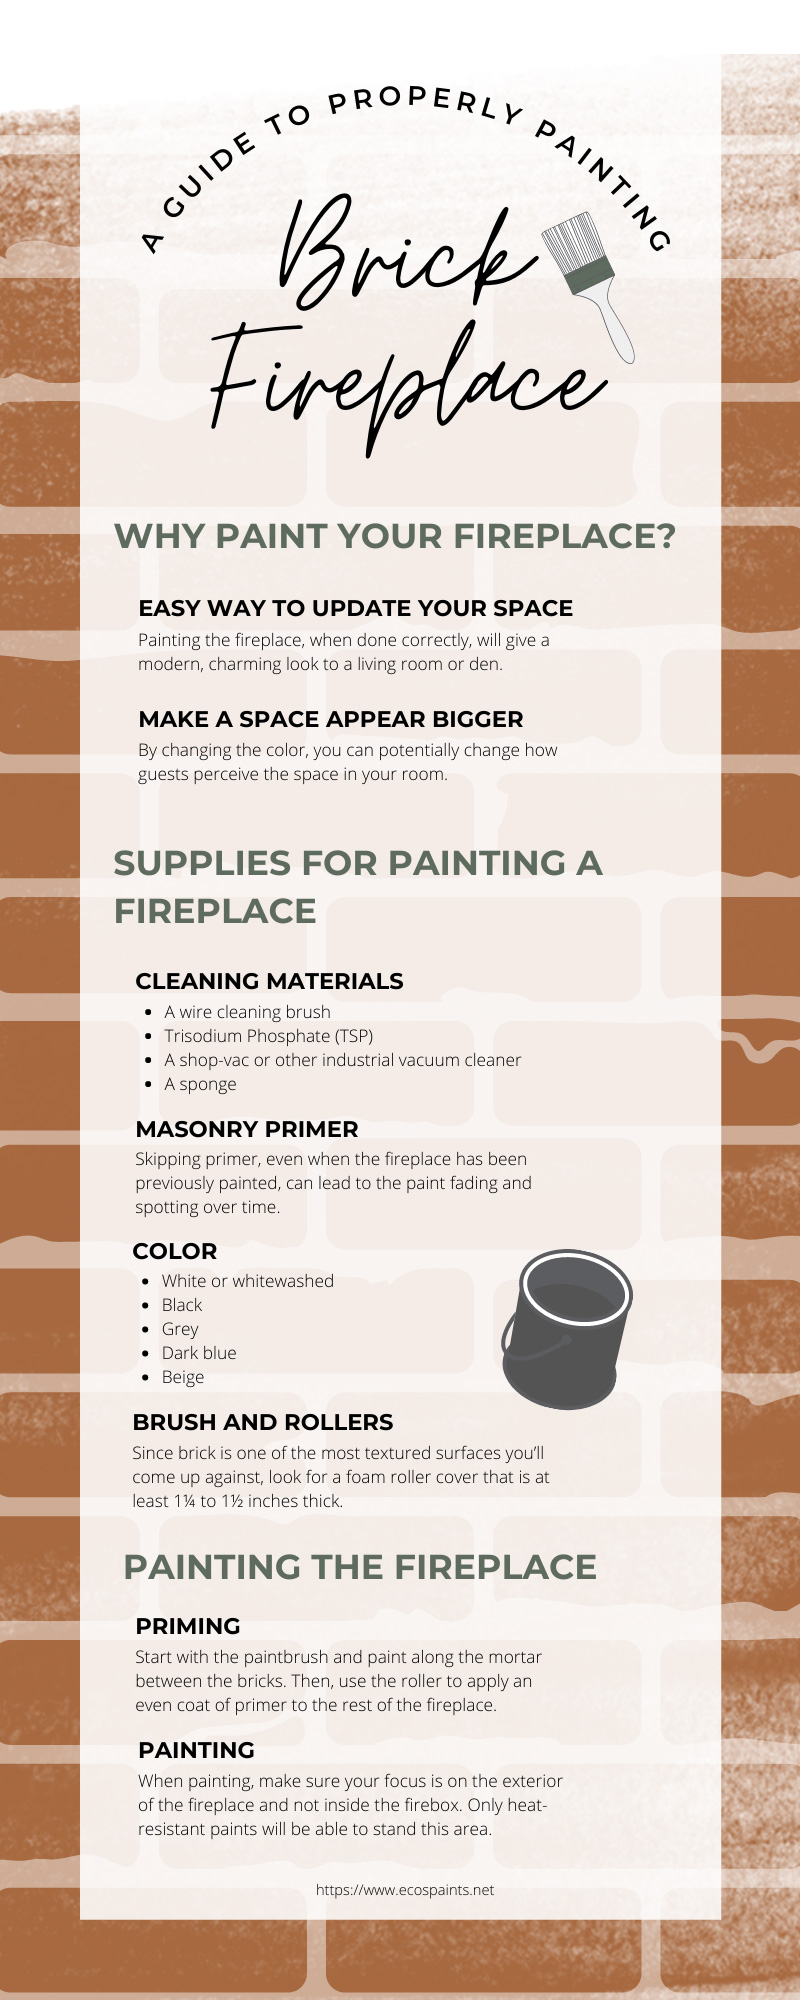 A Guide To Properly Painting a Brick Fireplace